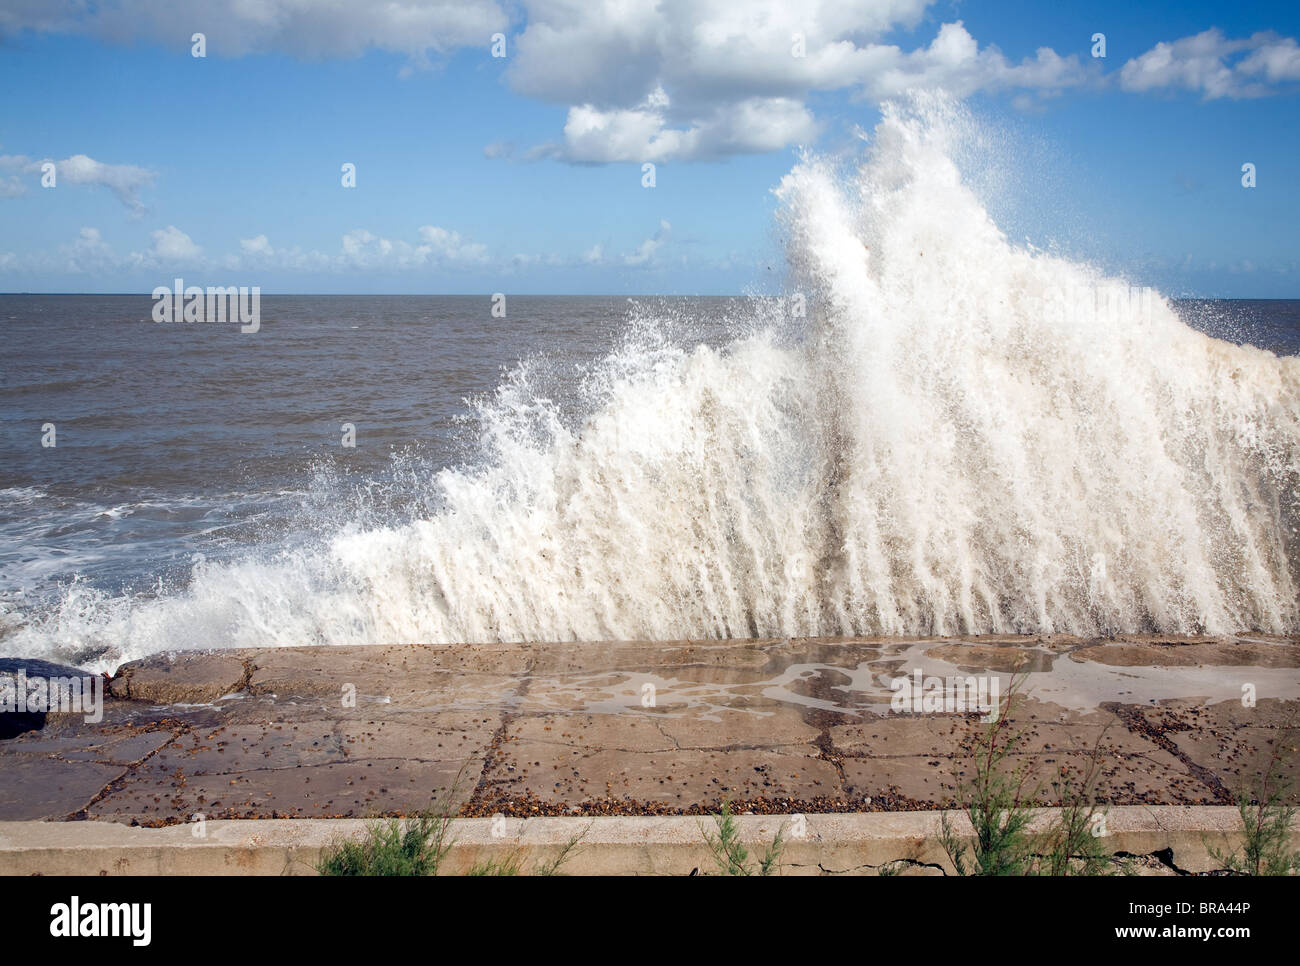 Waves hit sea wall illustrating hydraulic action and ...